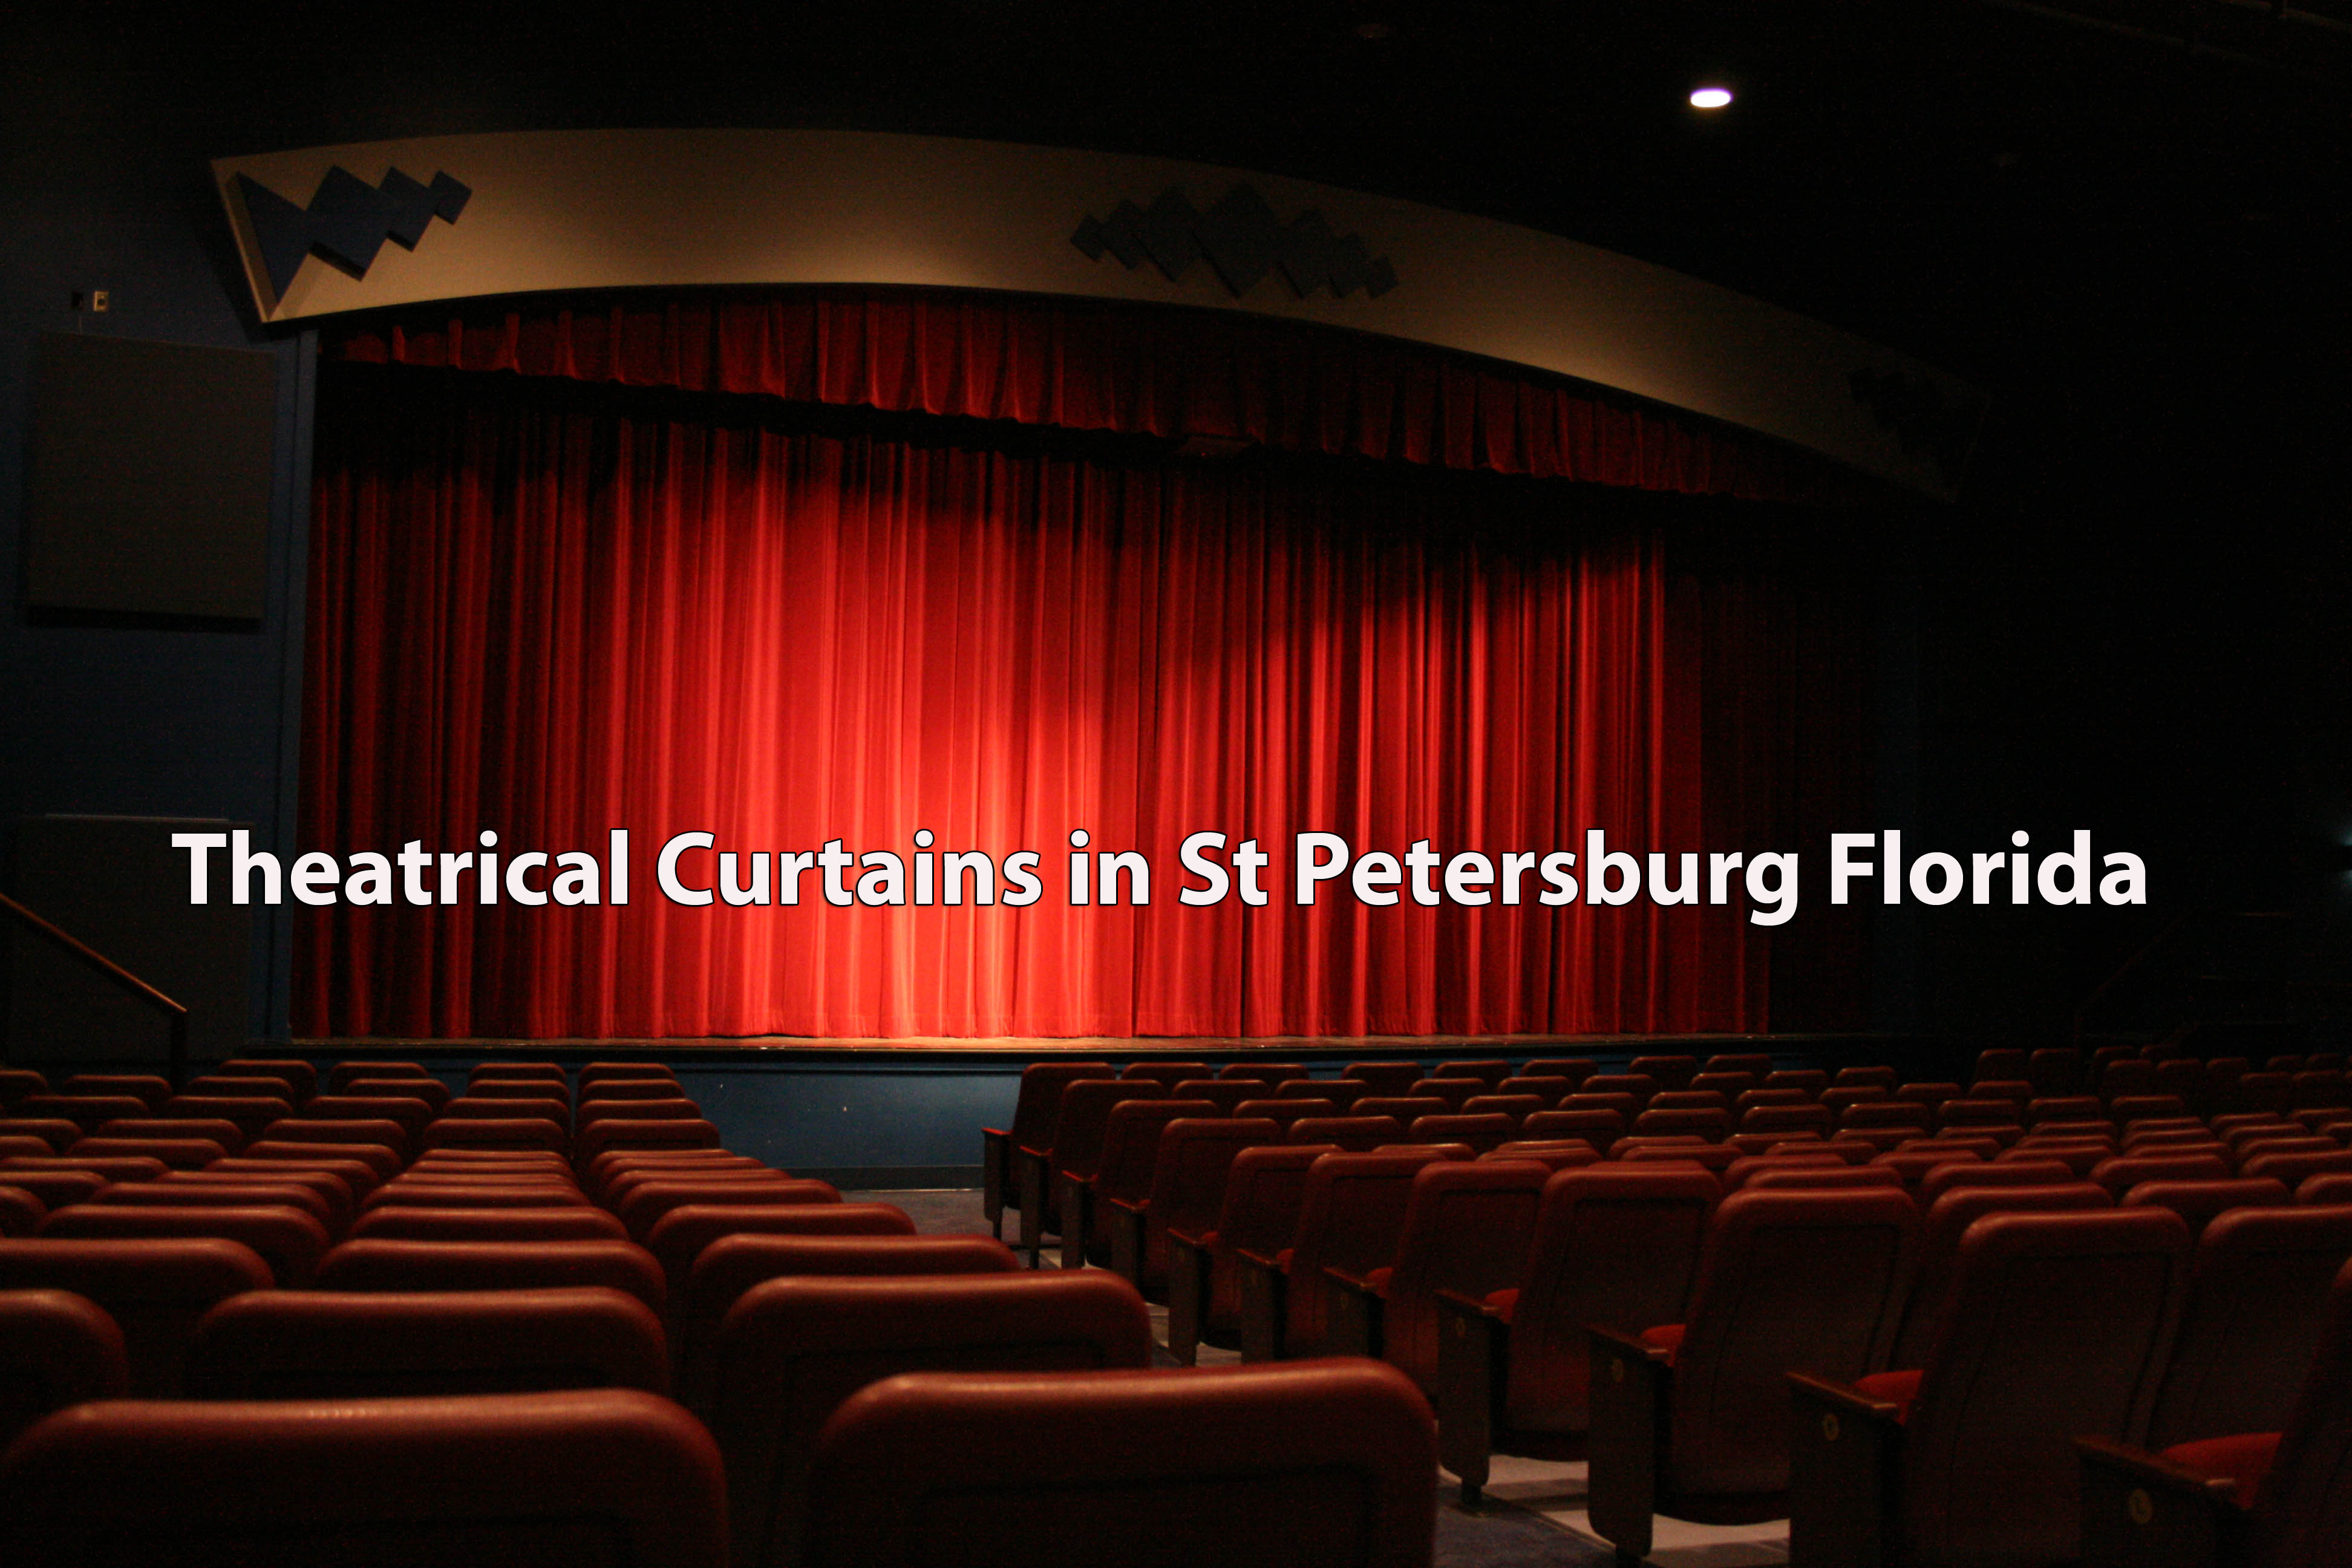 Theatrical Curtains in St Petersburg Florida